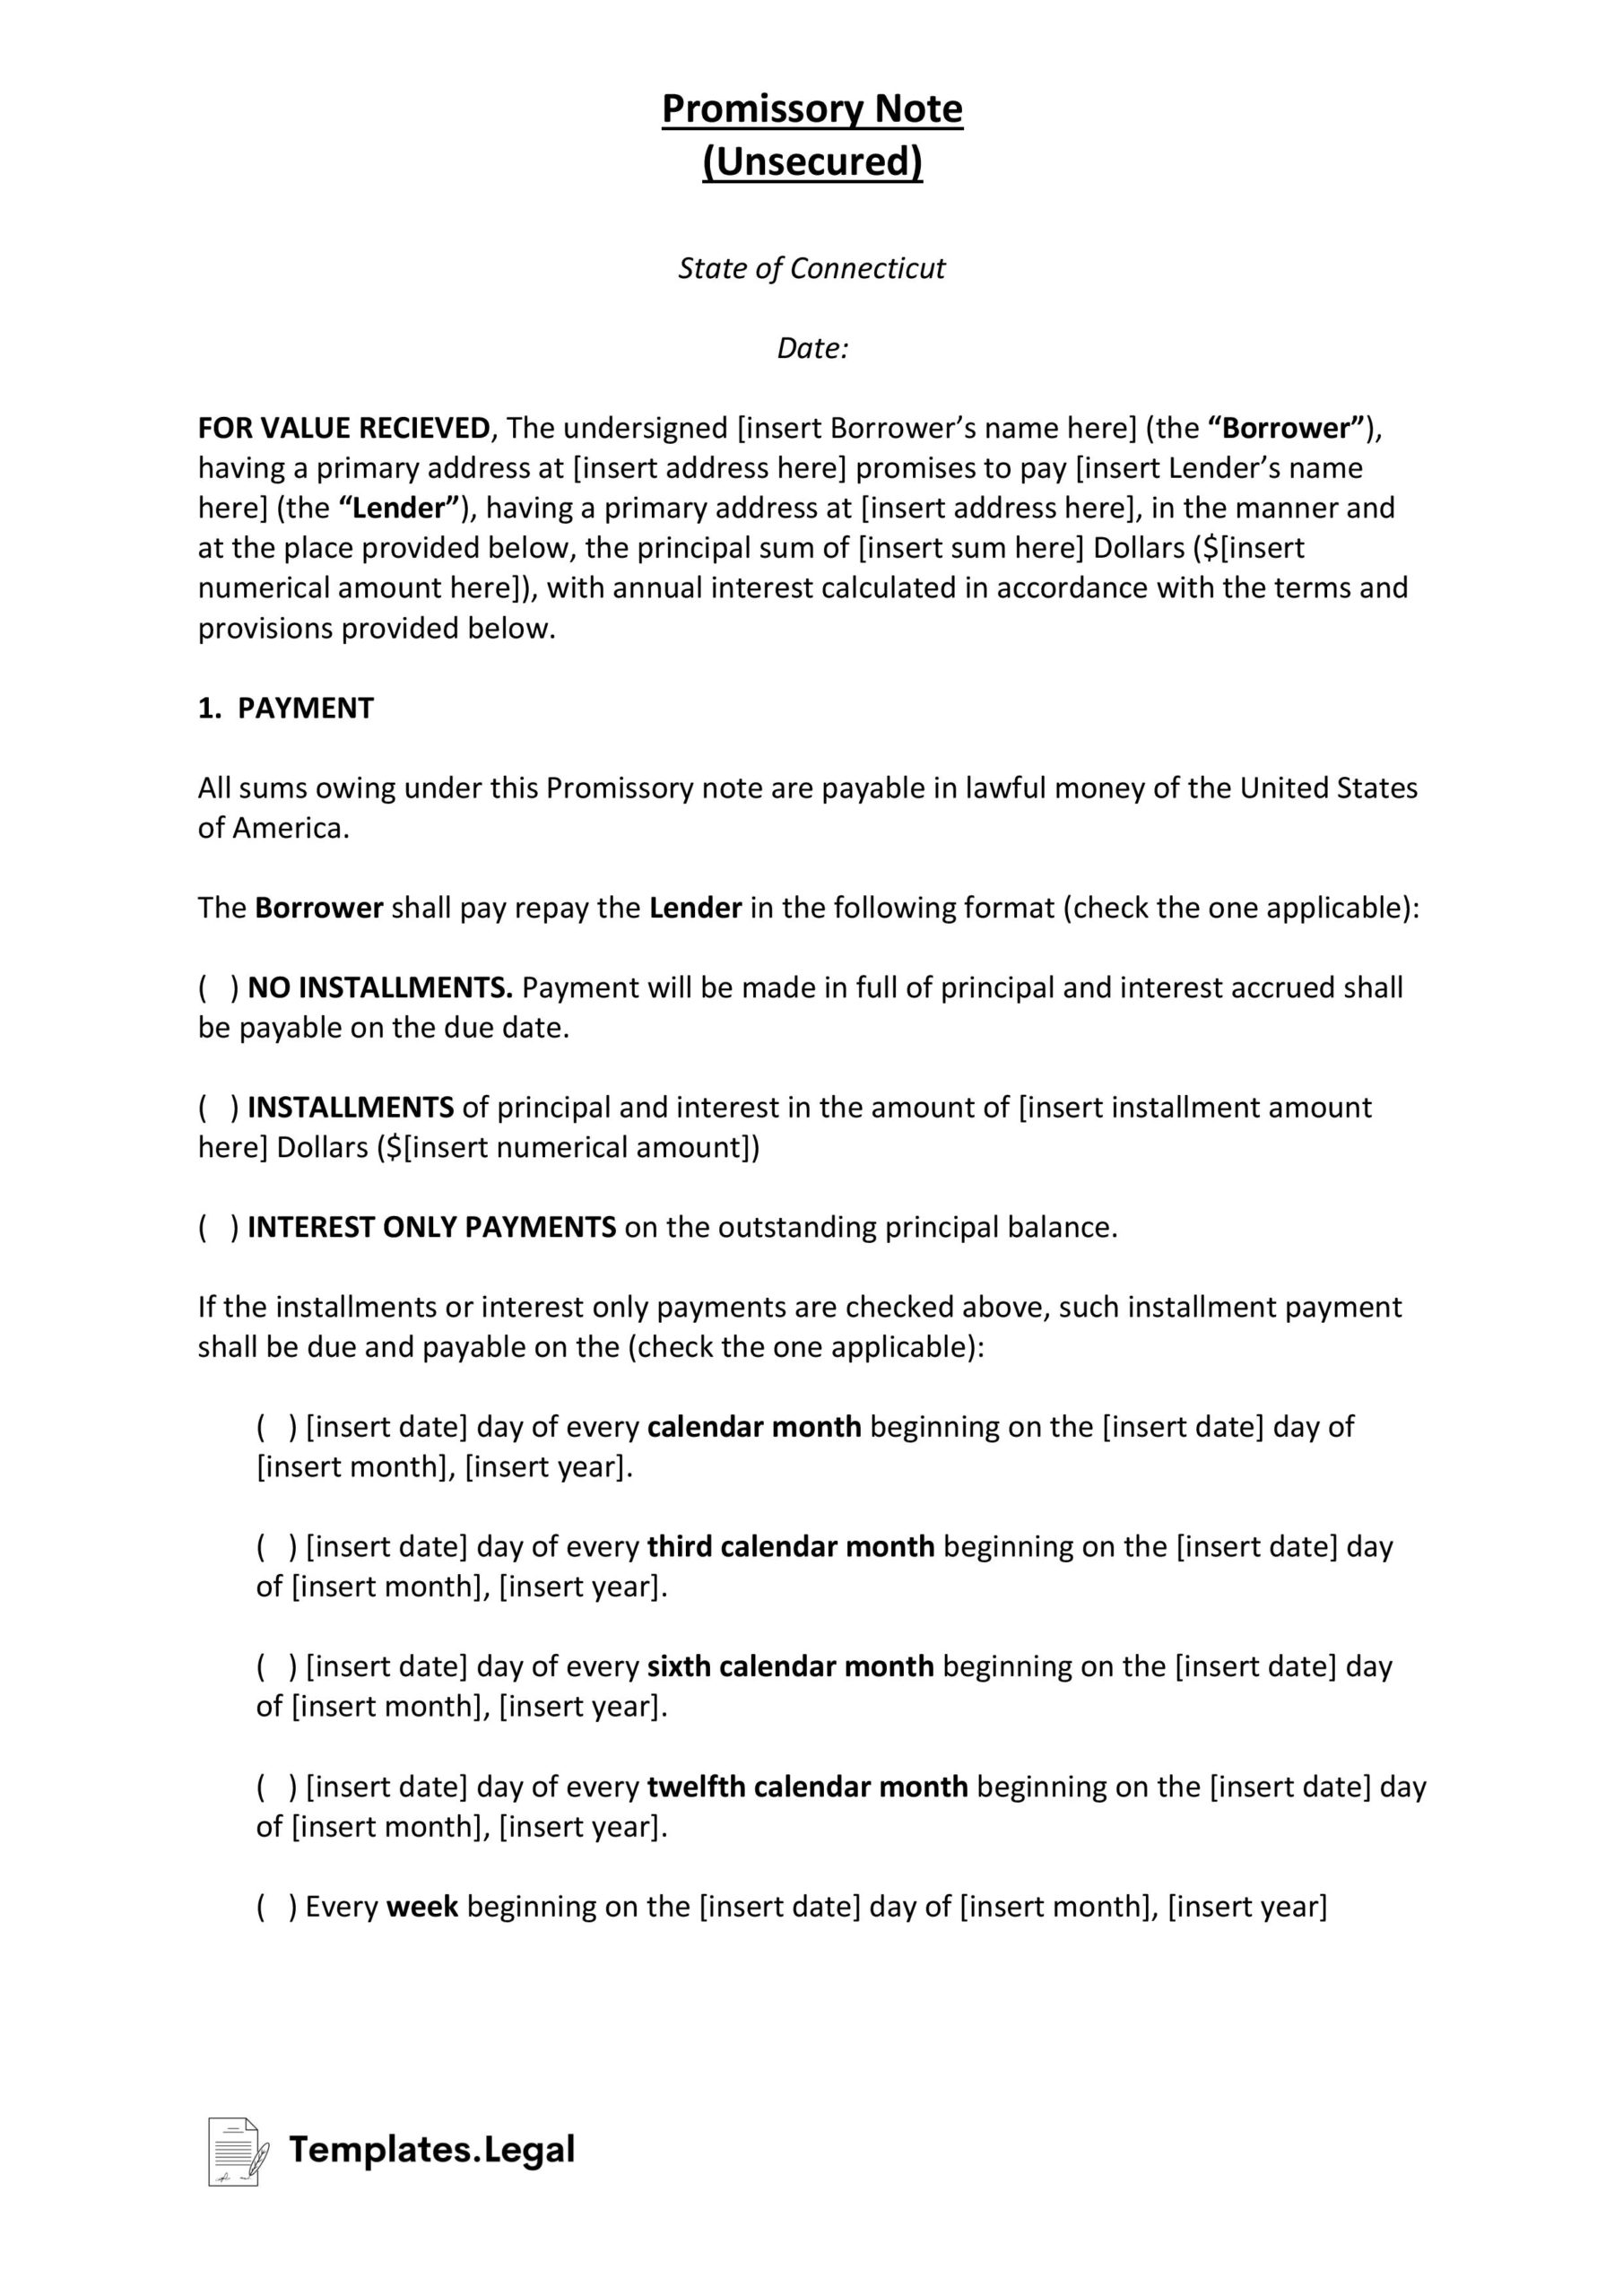 Connecticut Unsecured Promissory Note - Templates.Legal